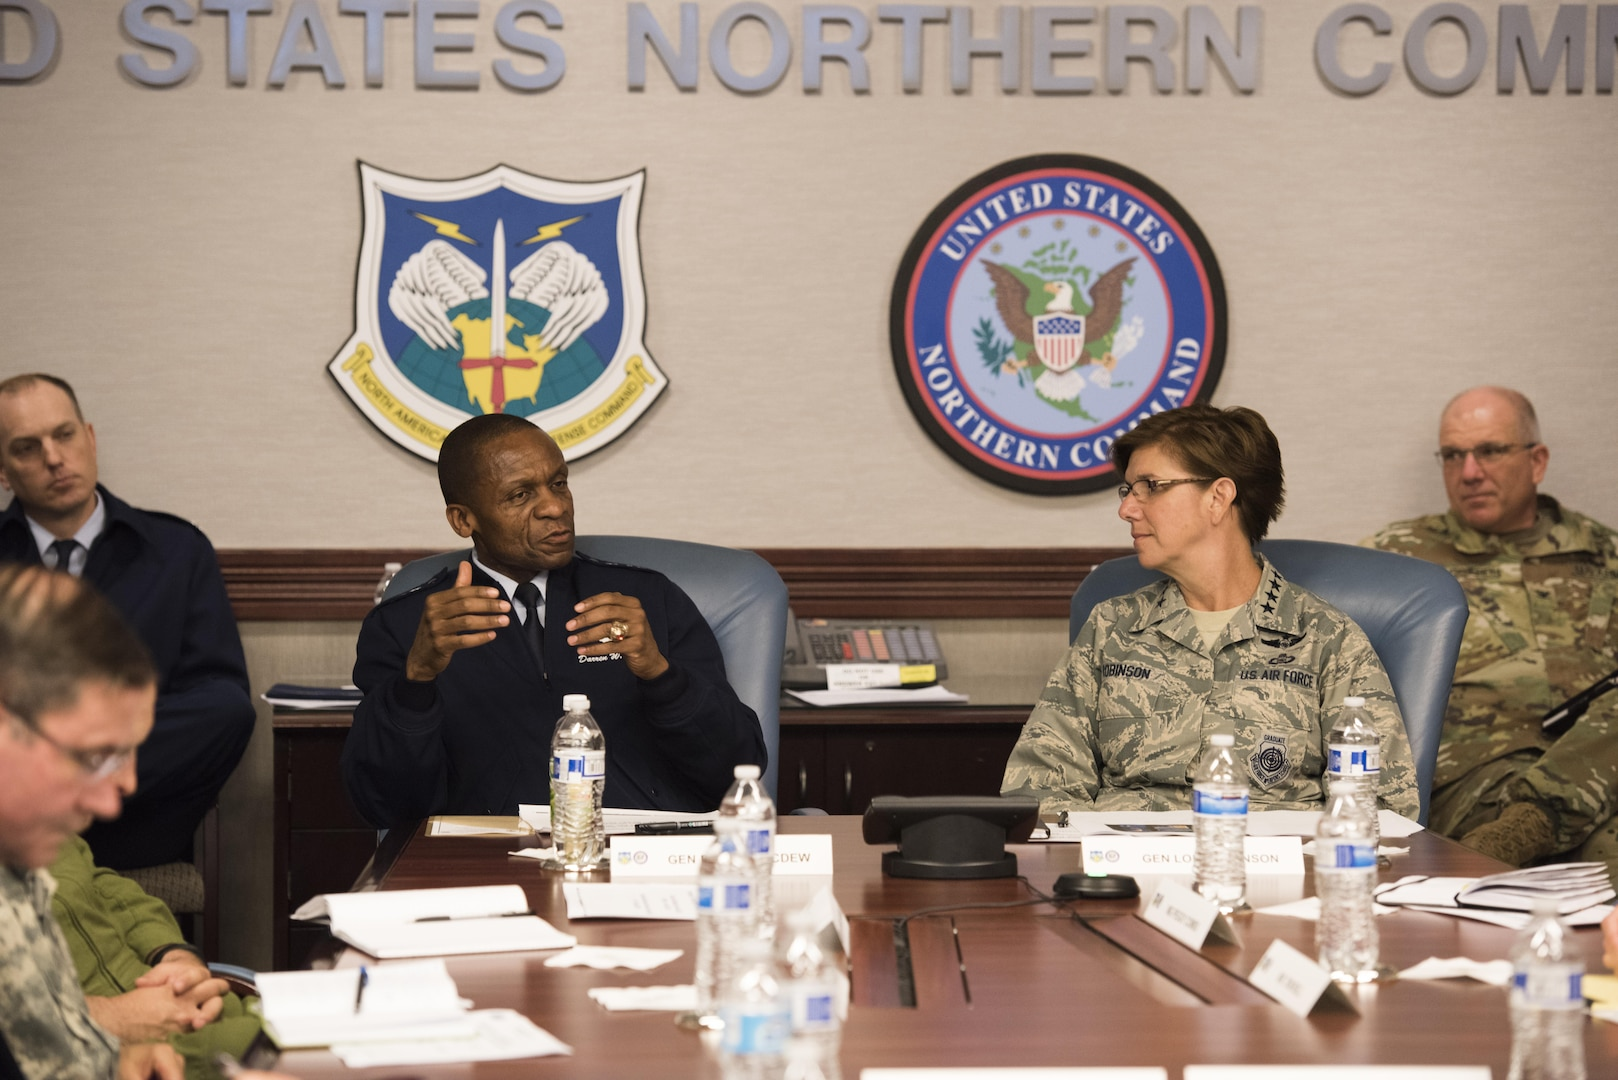 Gen. Darren McDew, U.S. Transportation Command commander, visited NORAD and USNORTHCOM June 29, 2016, to welcome Gen. Lori Robinson, the new commander of NORAD and USNORTHCOM, and to discuss her vision for the two commands. The two commanders also discussed their shared equities regarding military air transportation and Defense Support of Civil Authorities missions.  (Photo by Tech. Sgt. Joe Laws)